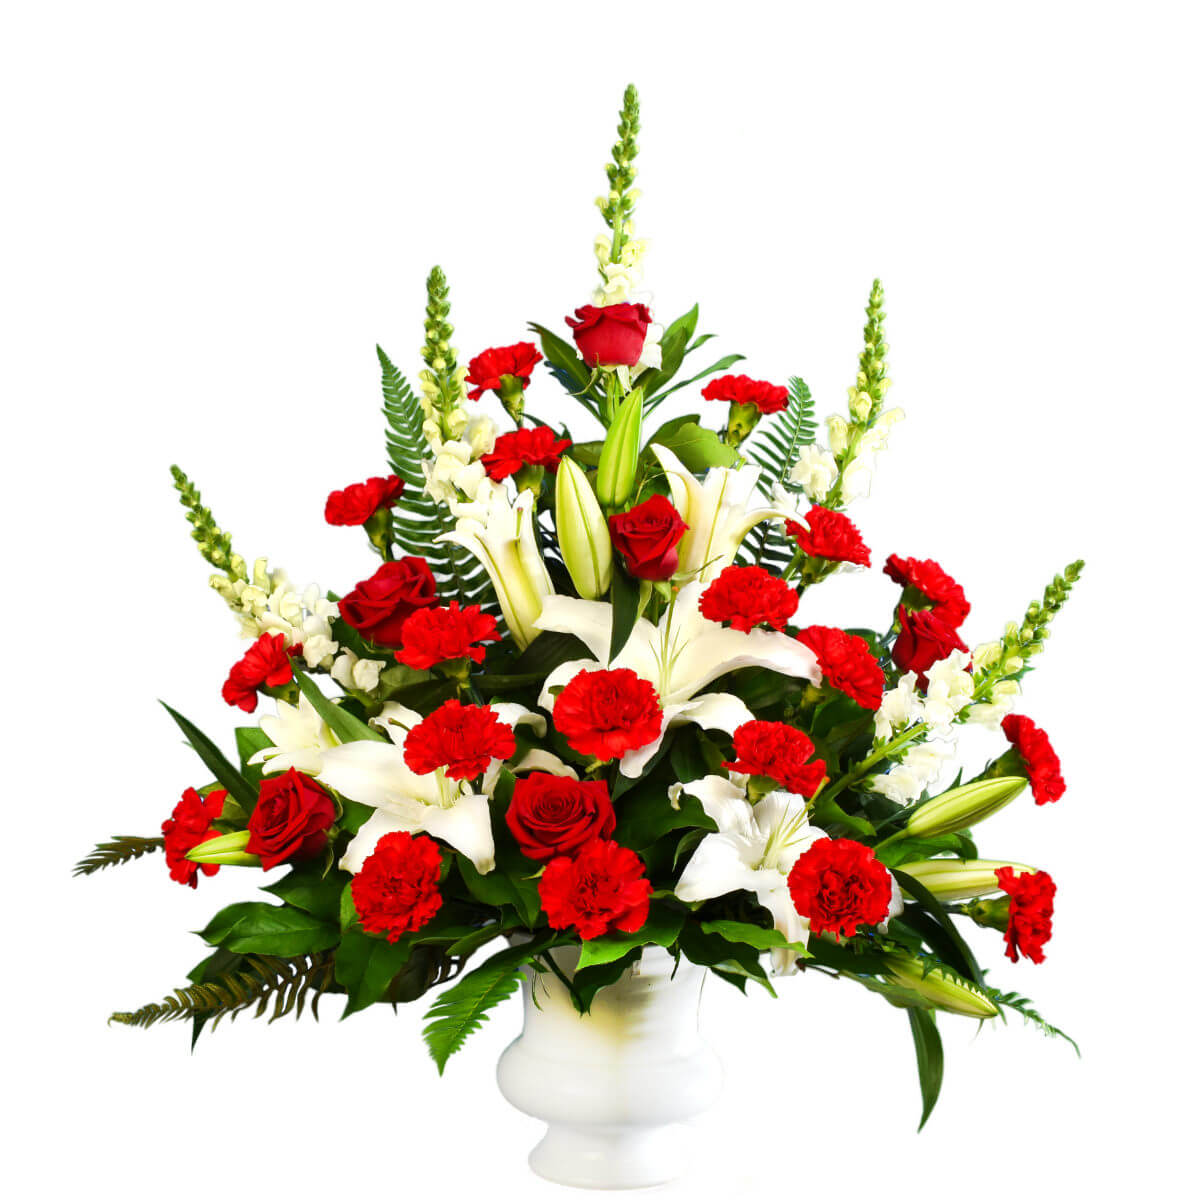 Affordable and Elegant Funeral Flower Arrangement | Funeral Flower delivery in Burnaby & Vancouver Adele Rae Florist